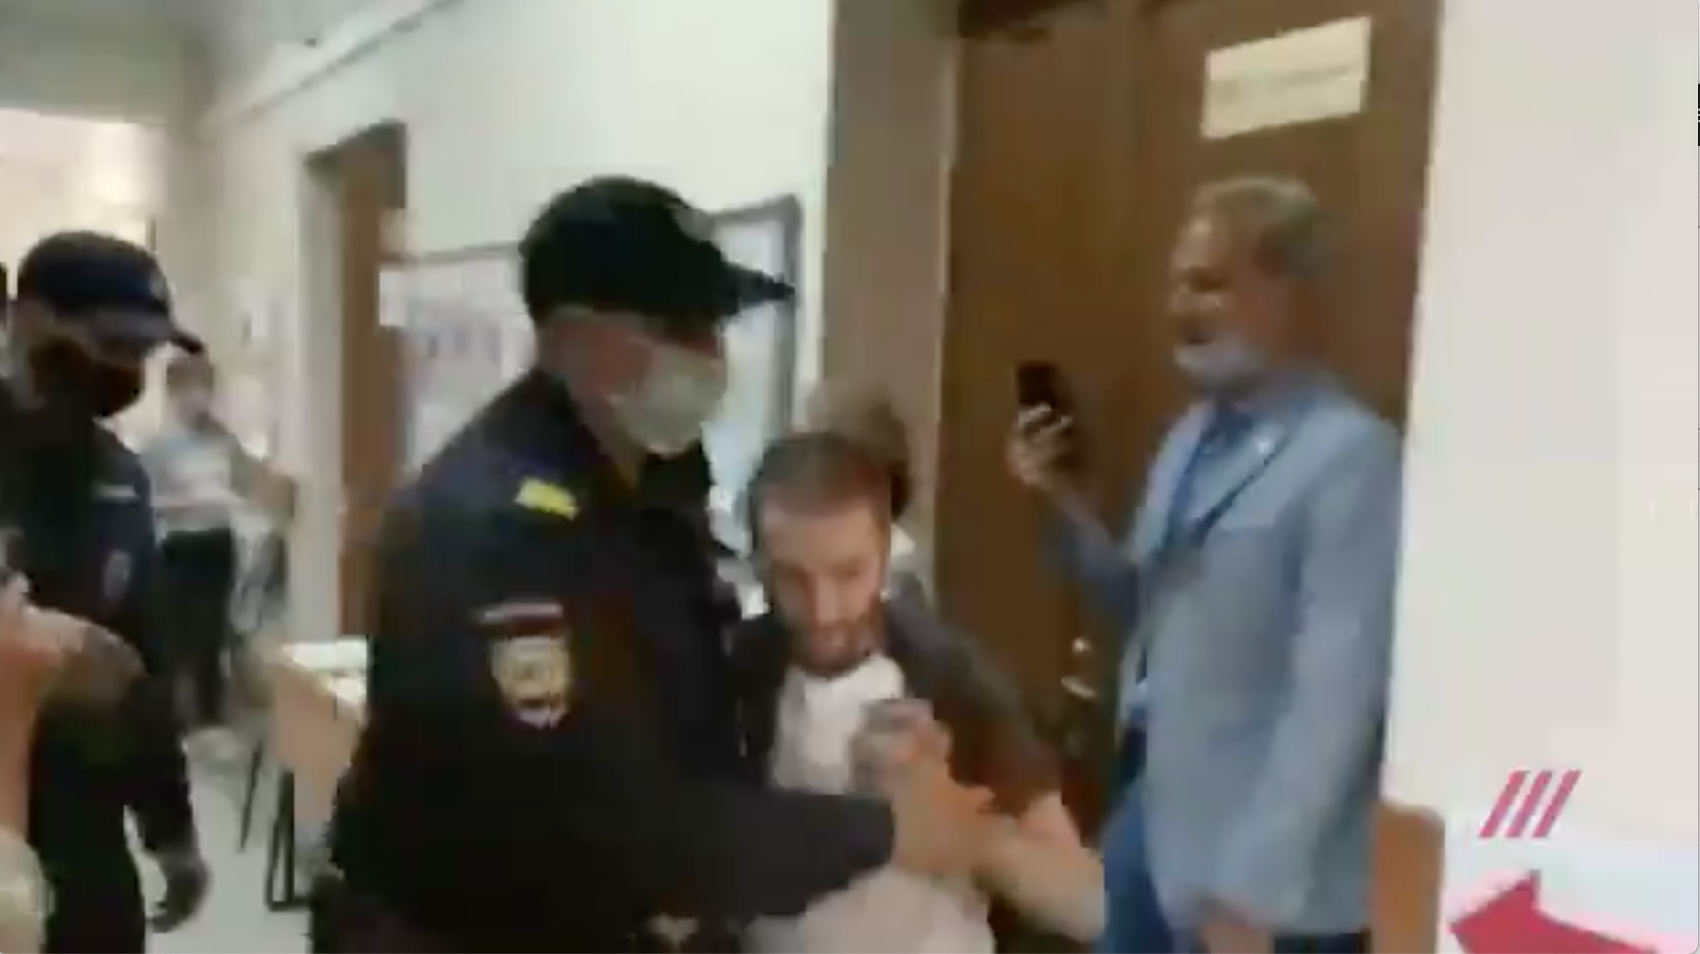 Russian journalist has shoulder broken by police officer while investigating constitutional vote irregularities  photo